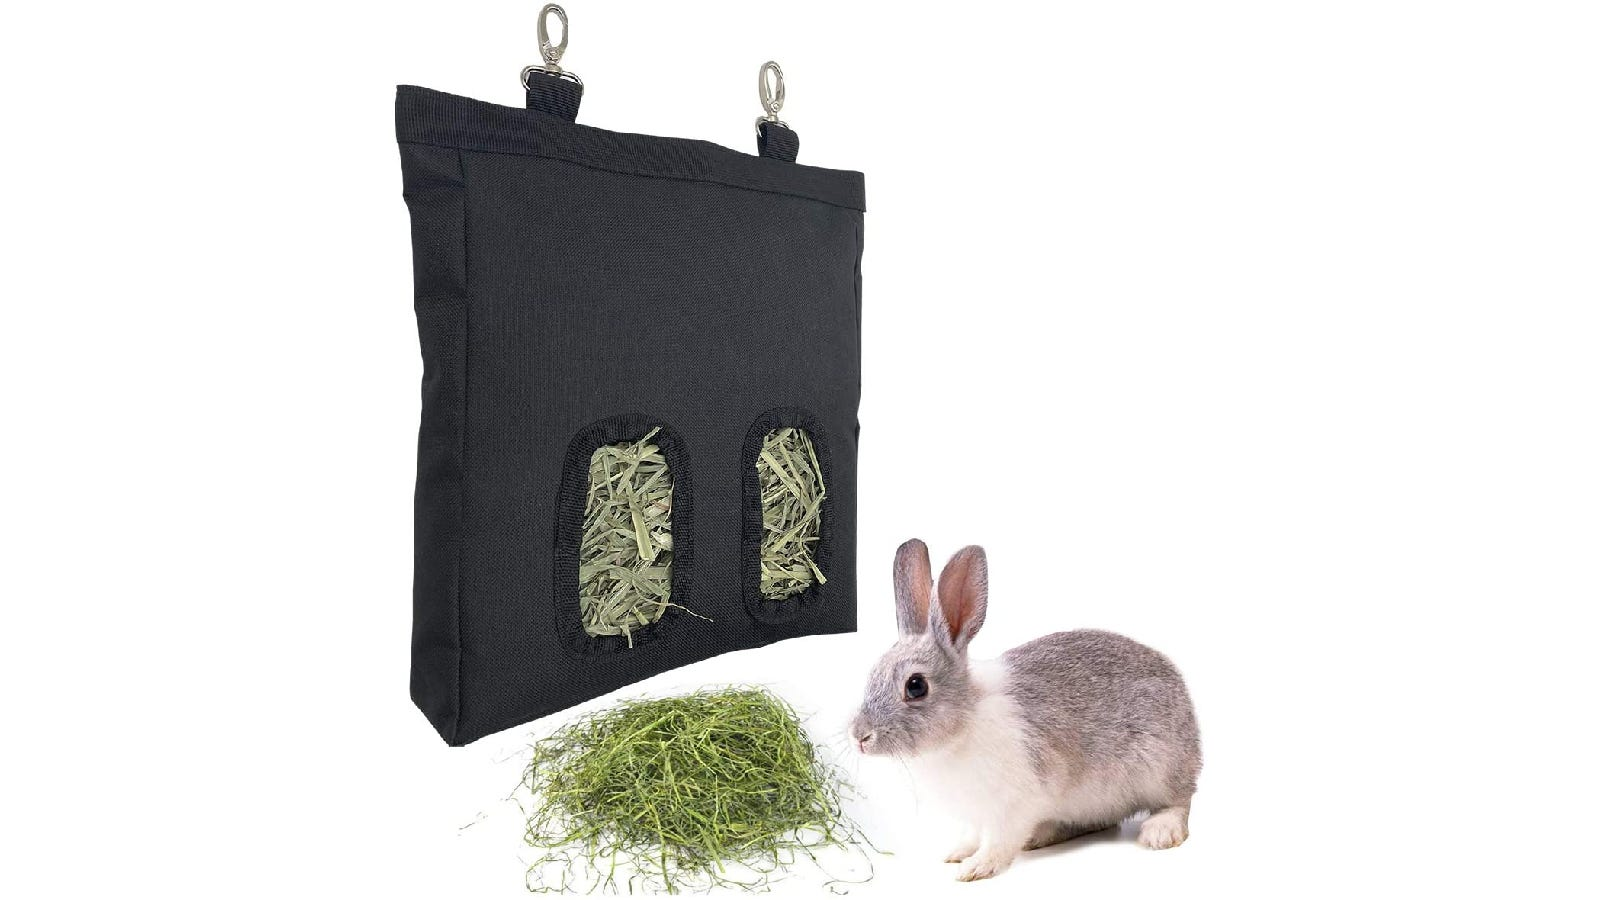 Black canvas hay feeder with hay sticking out of two circular openings. Below the bag sits a rabbit next to a pile of hay.